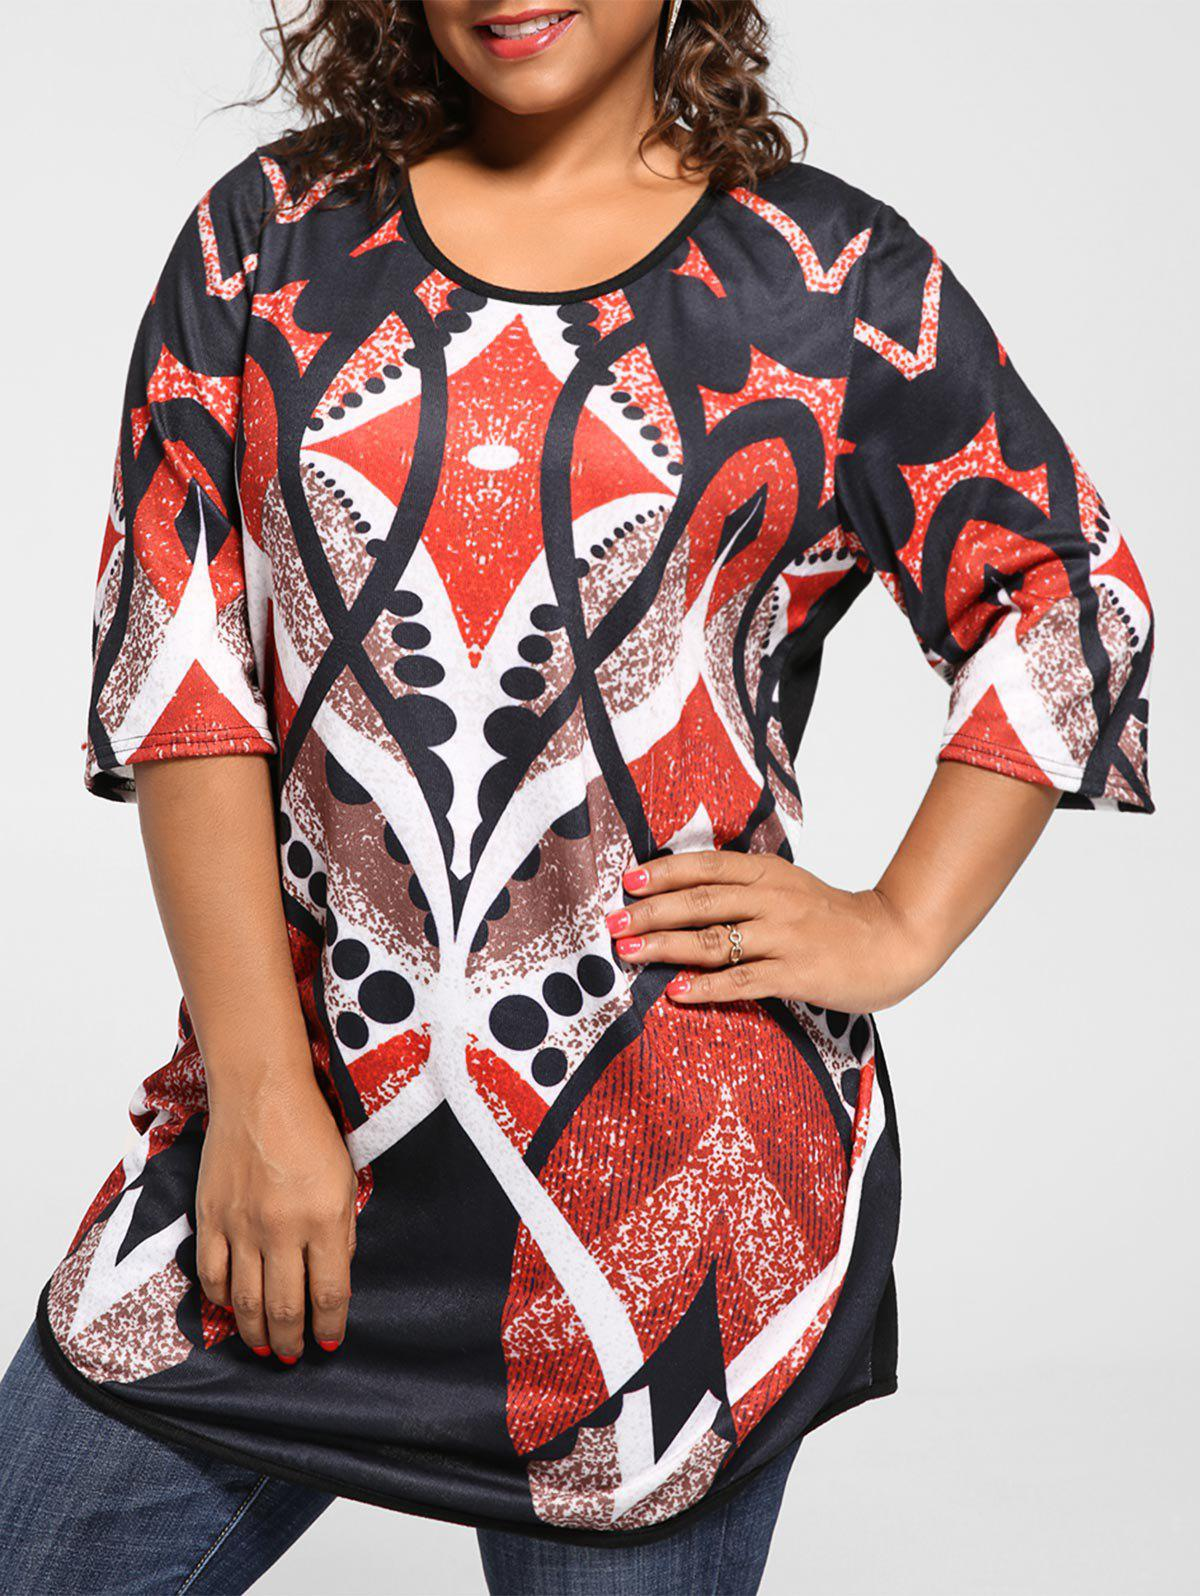 303ee4469c6 2019 Plus Size Print Tunic Knit Top